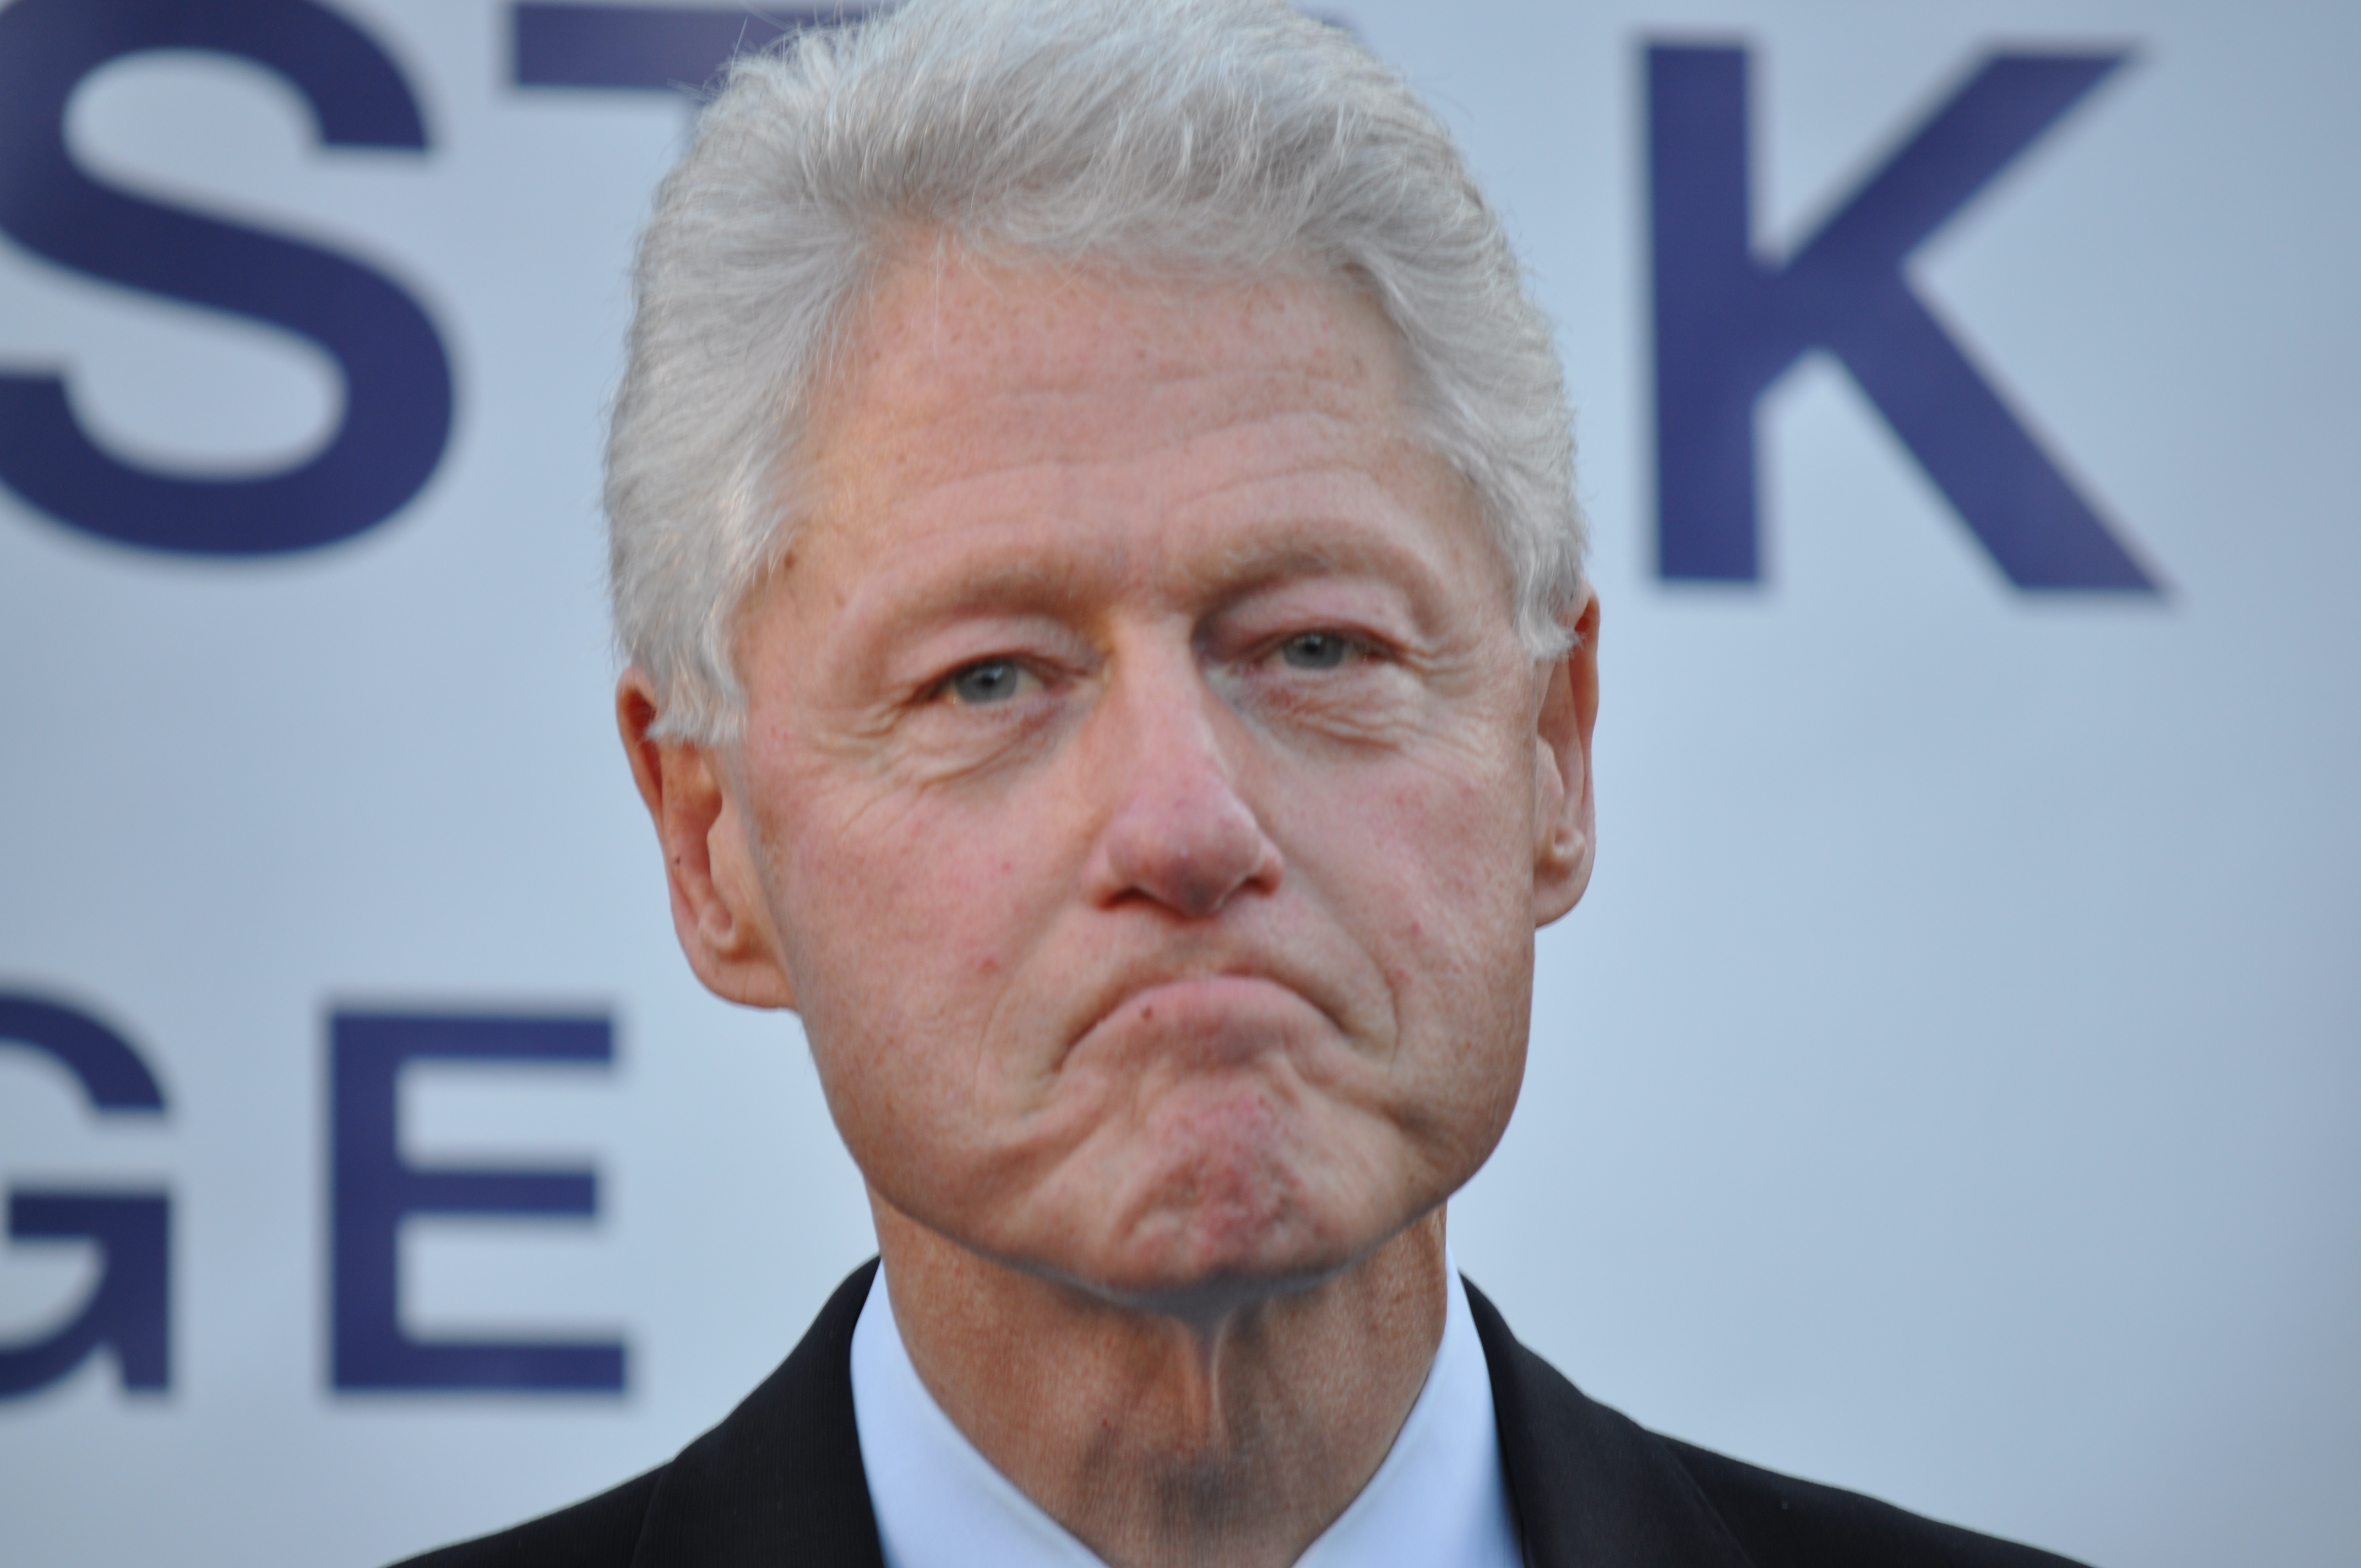 an overview of the clinton sex scandal A guide to the allegations of bill clinton's womanizing one woman was alleged to have been asked by clinton to give him oral sex in a car while he was the state attorney general (a claim she denied.